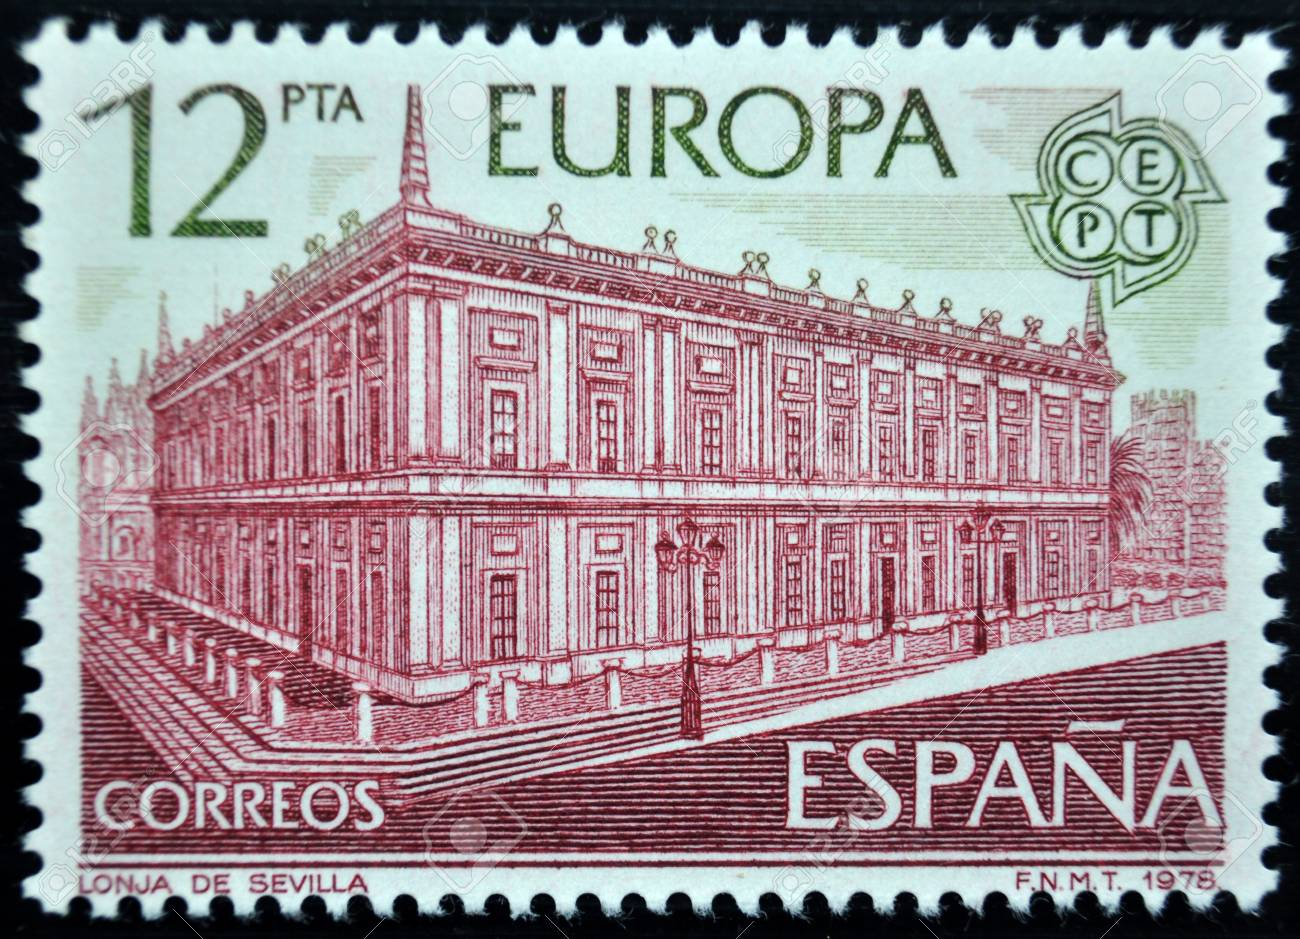 Postage Stamp Spain 1978 Stock Photo